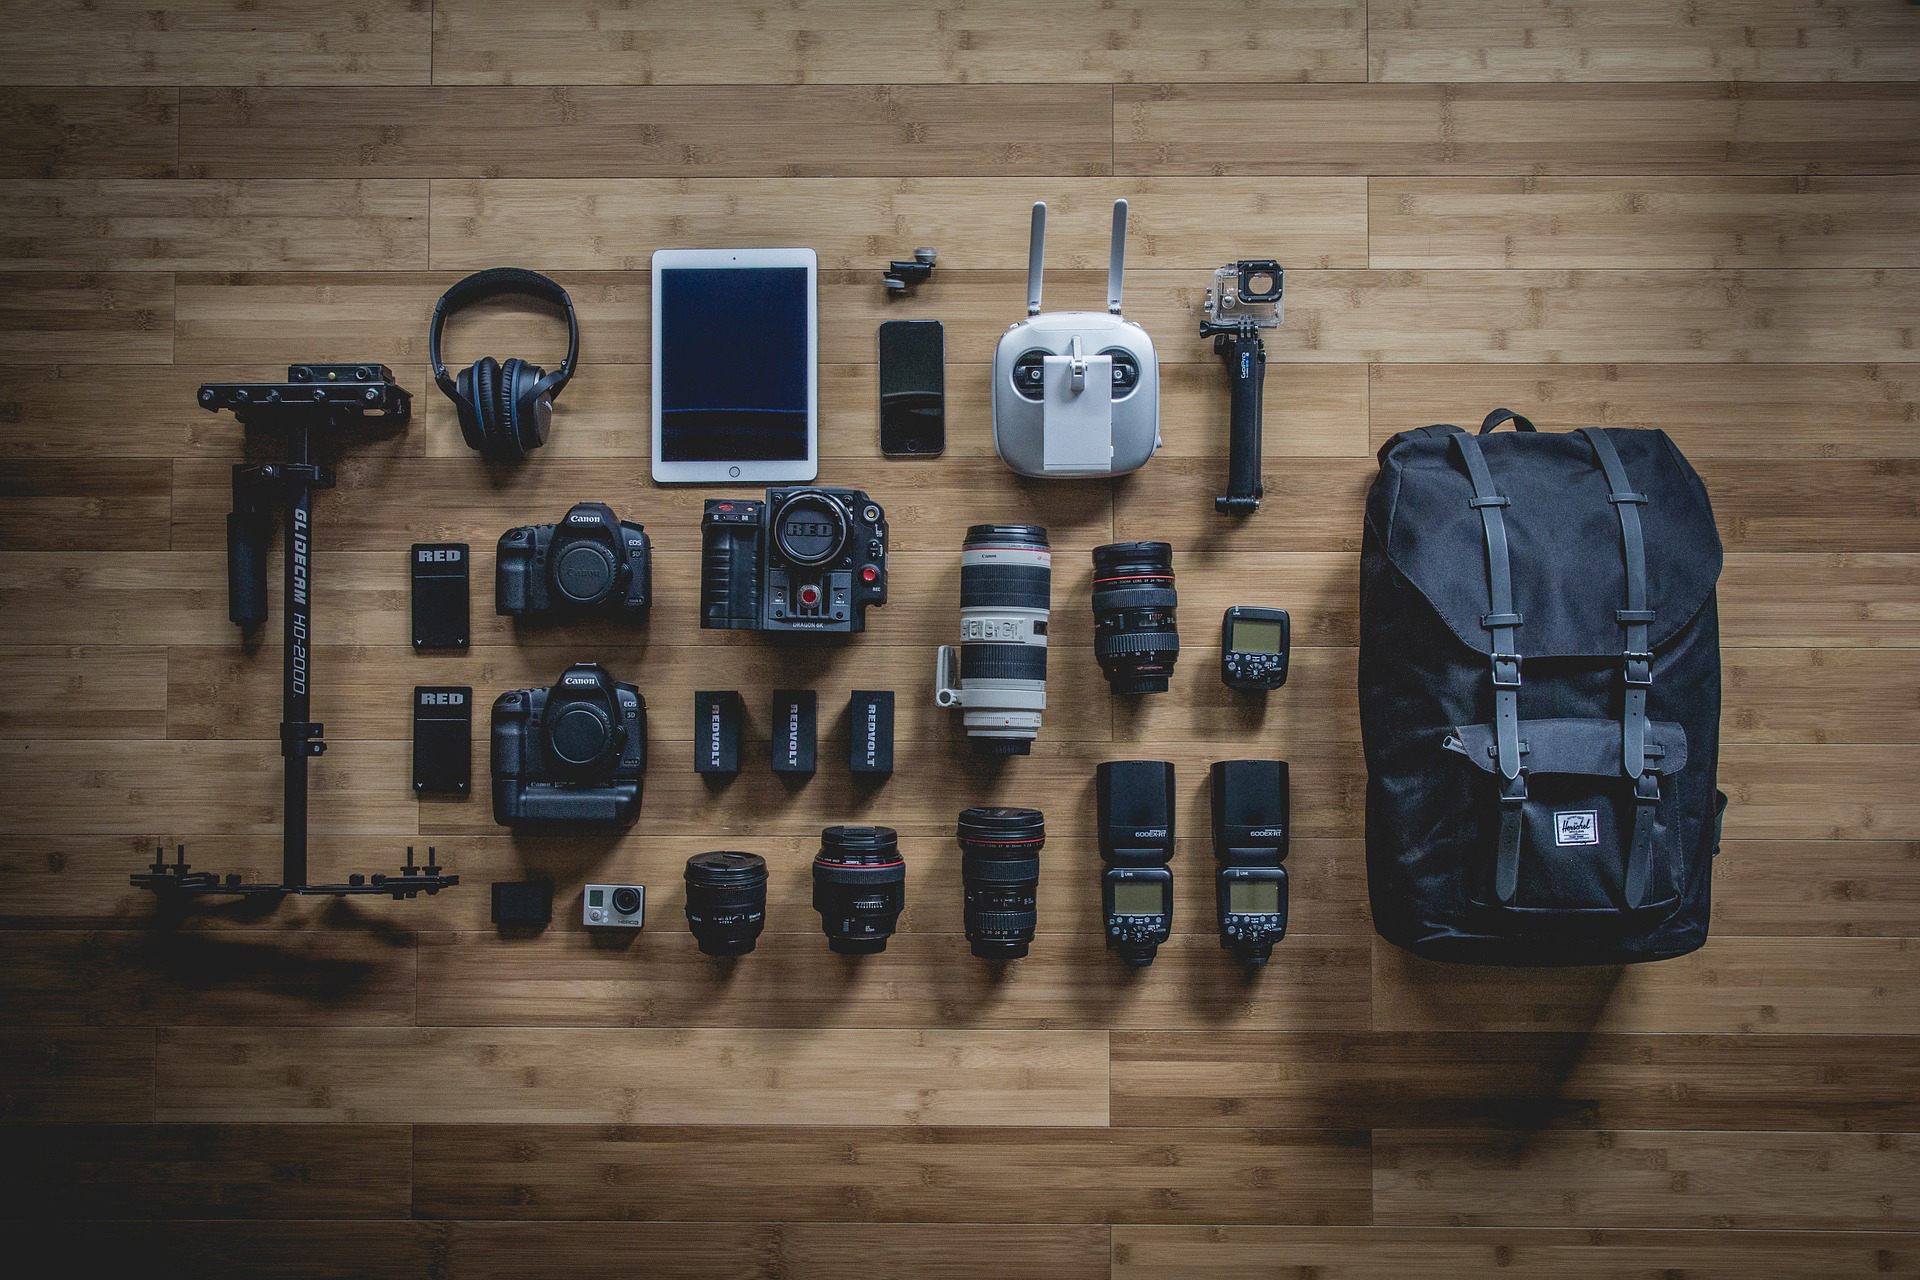 Journalism equipment laid out on a wooden table